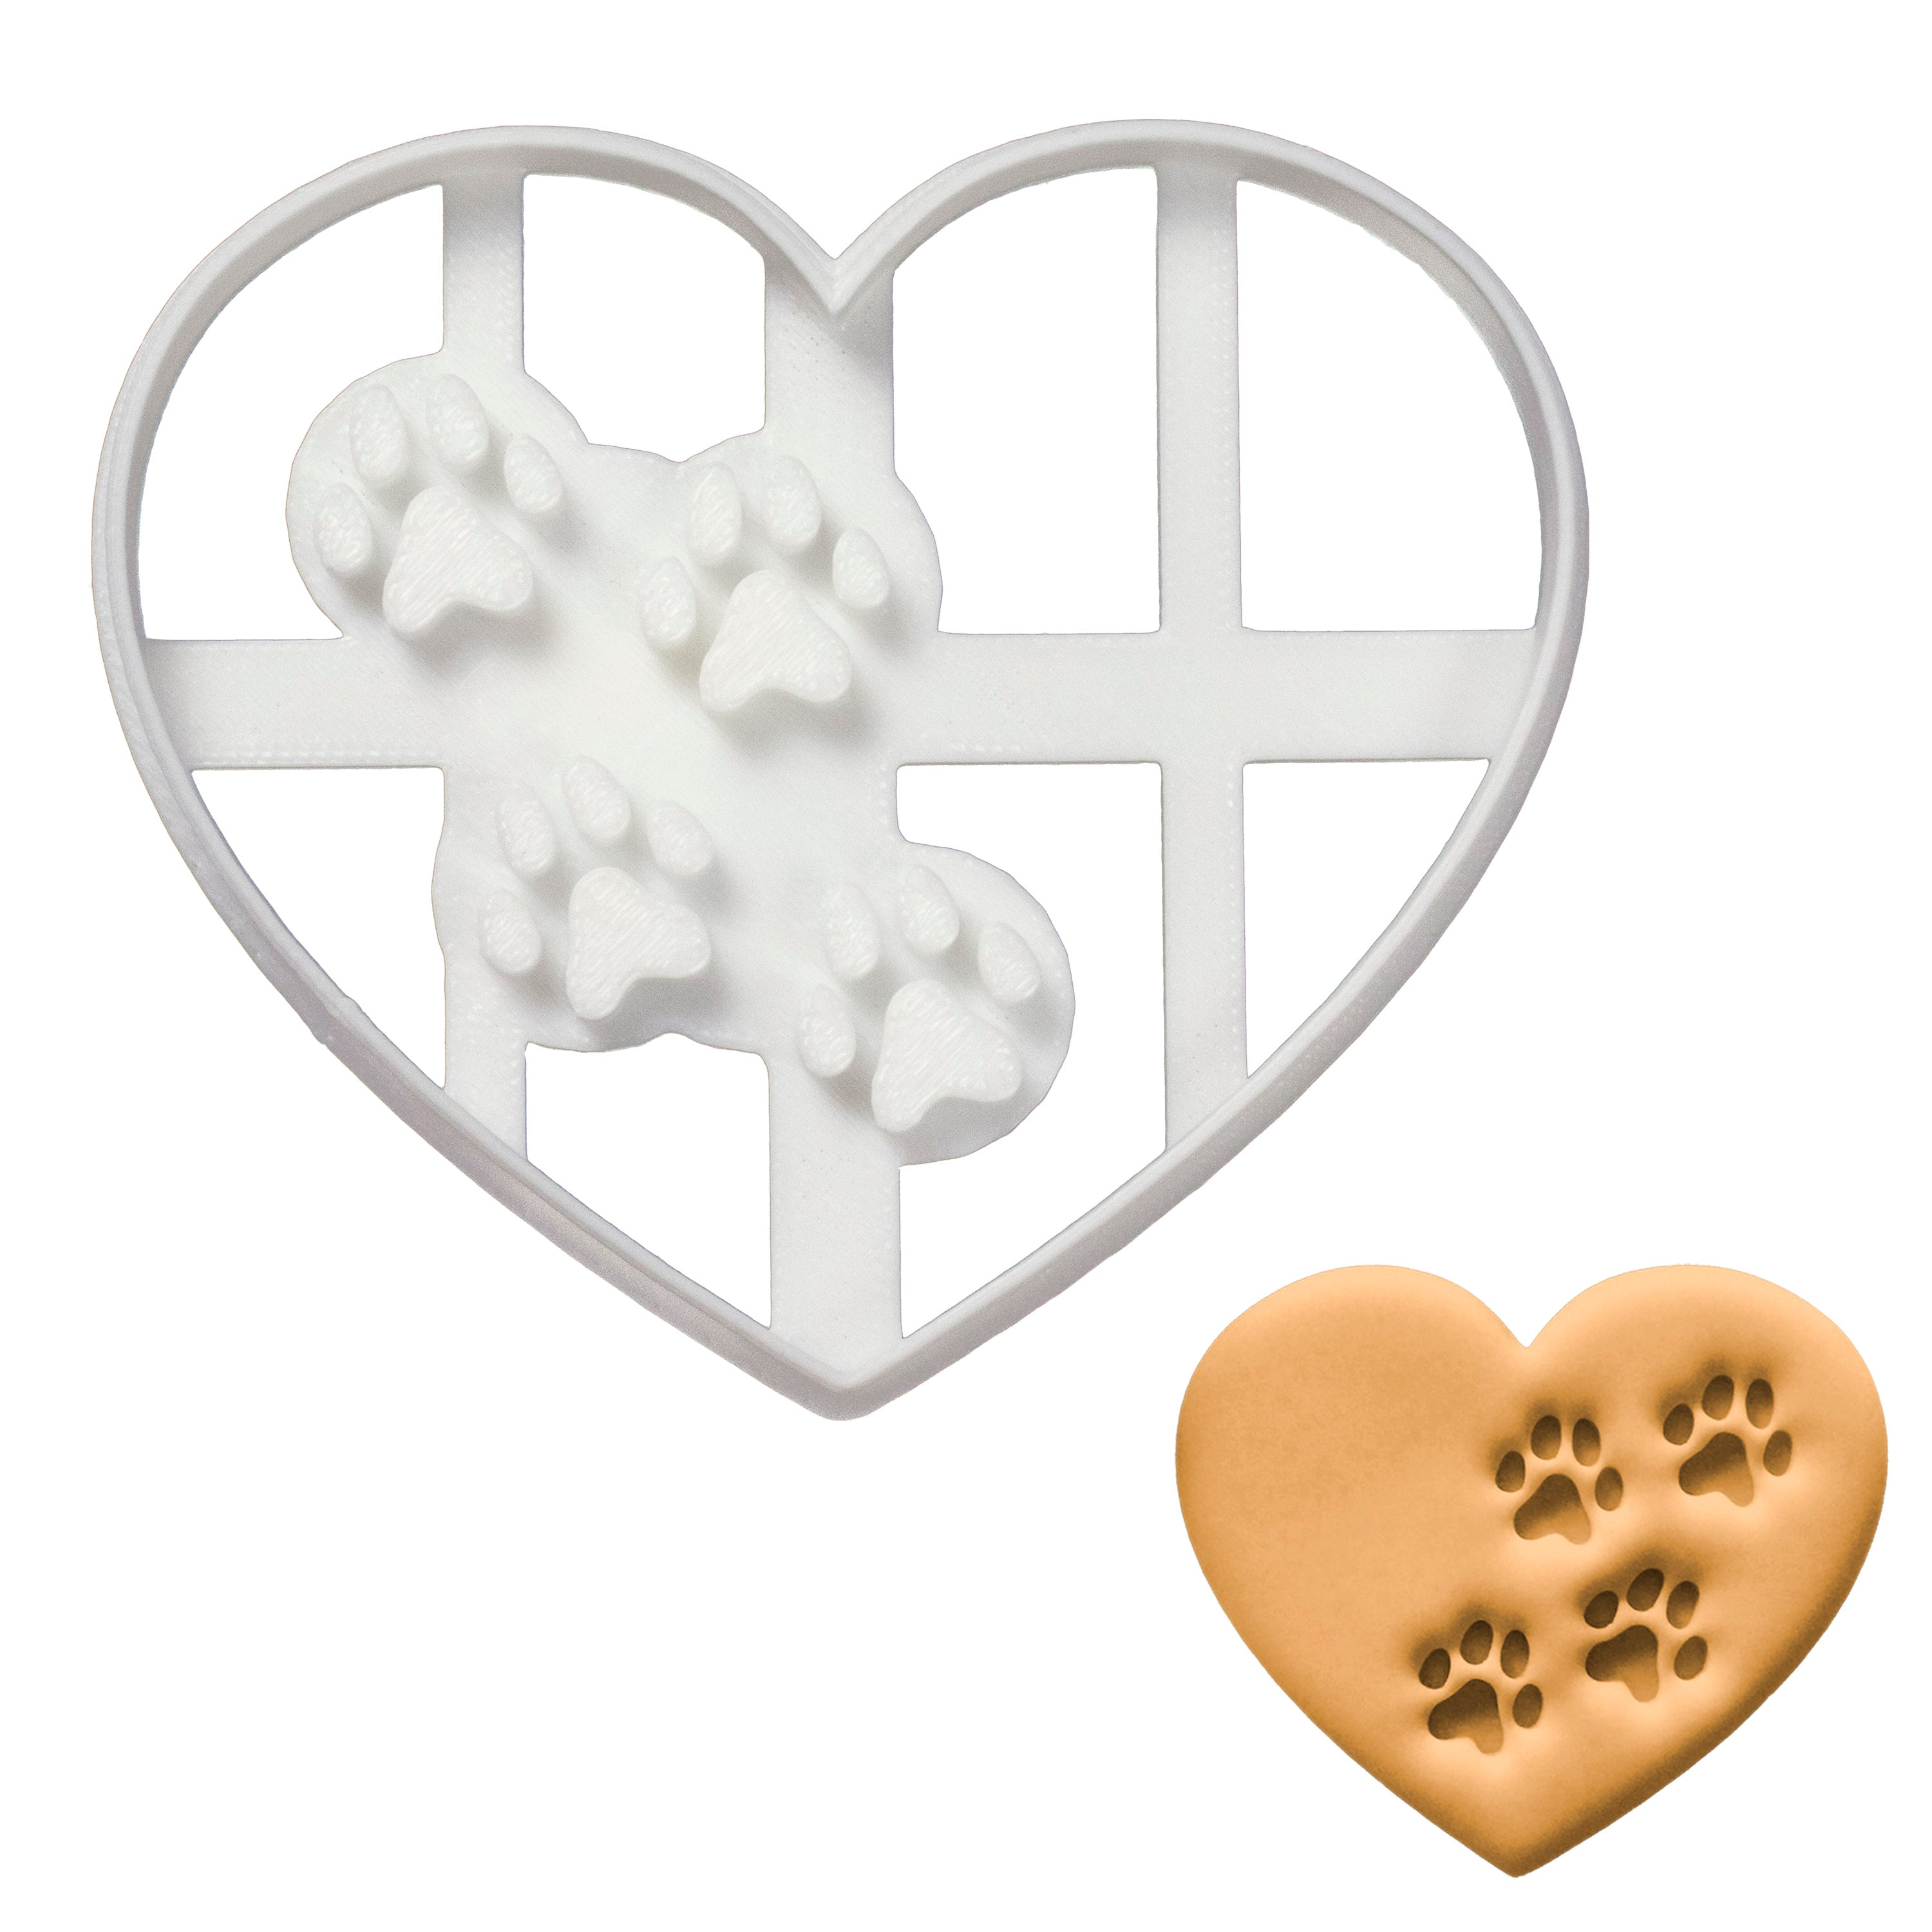 Heart with Paw prints cookie cutter